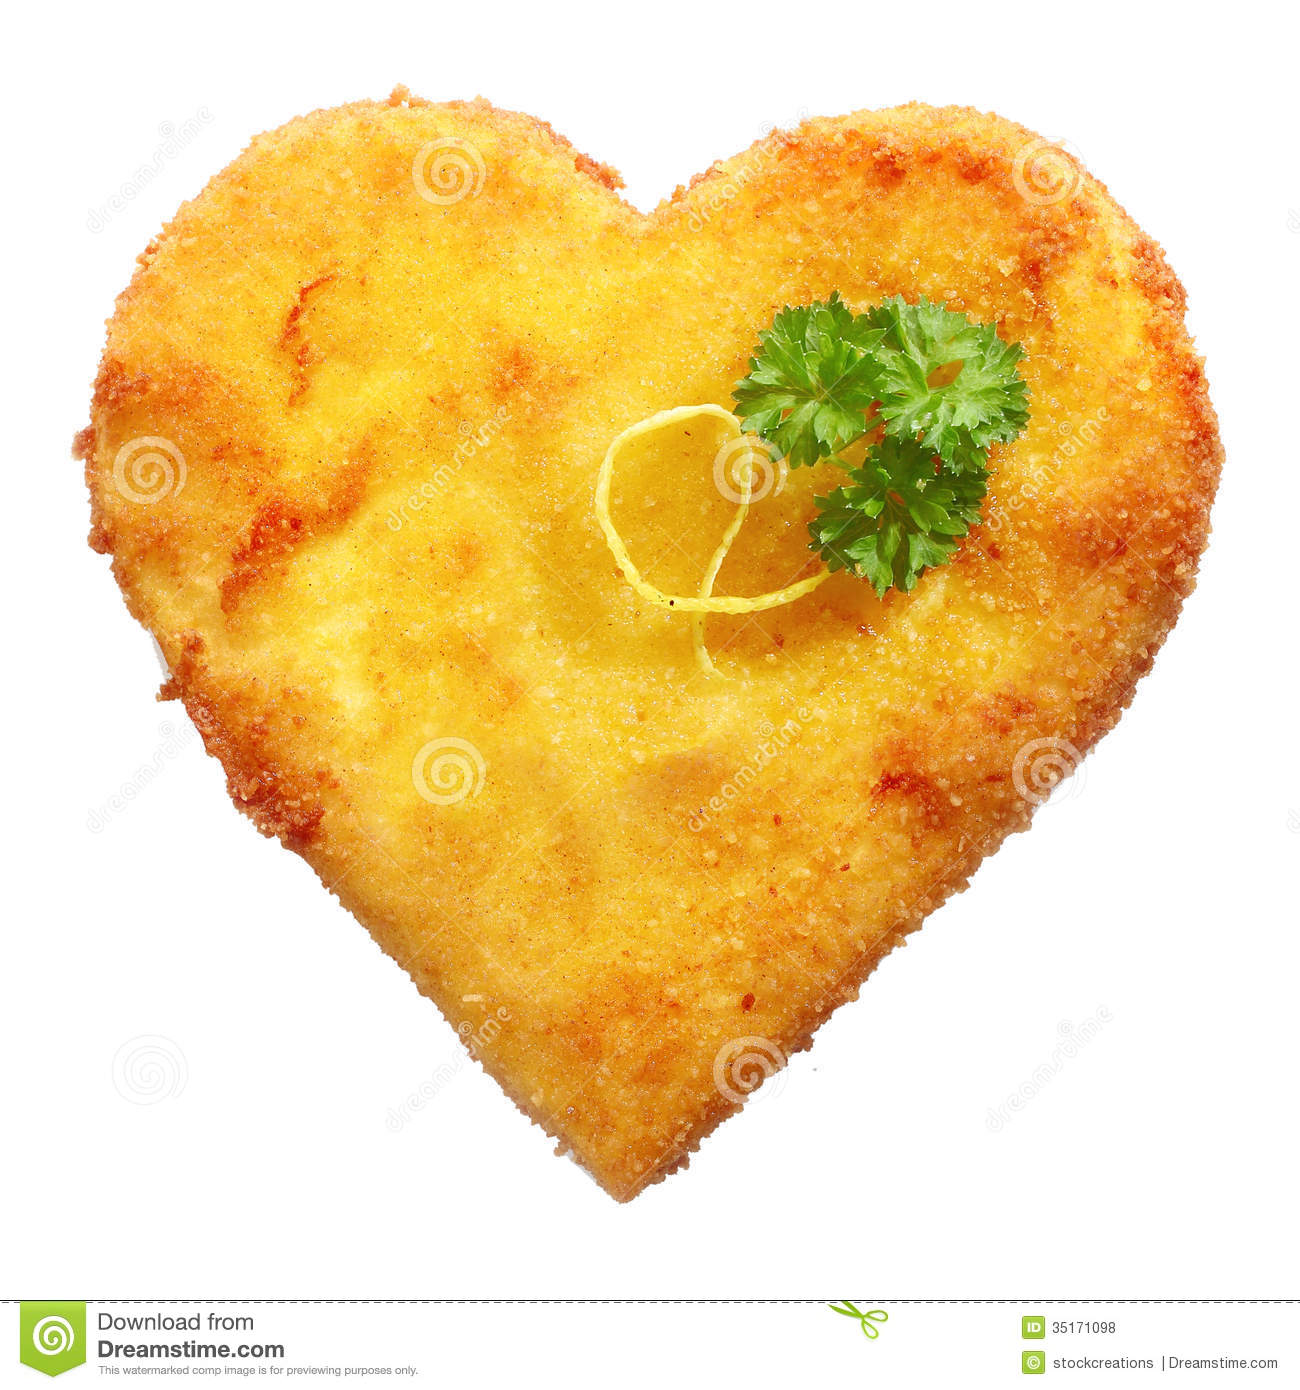 Fried Schnitzel in heart shape, decorated, on white